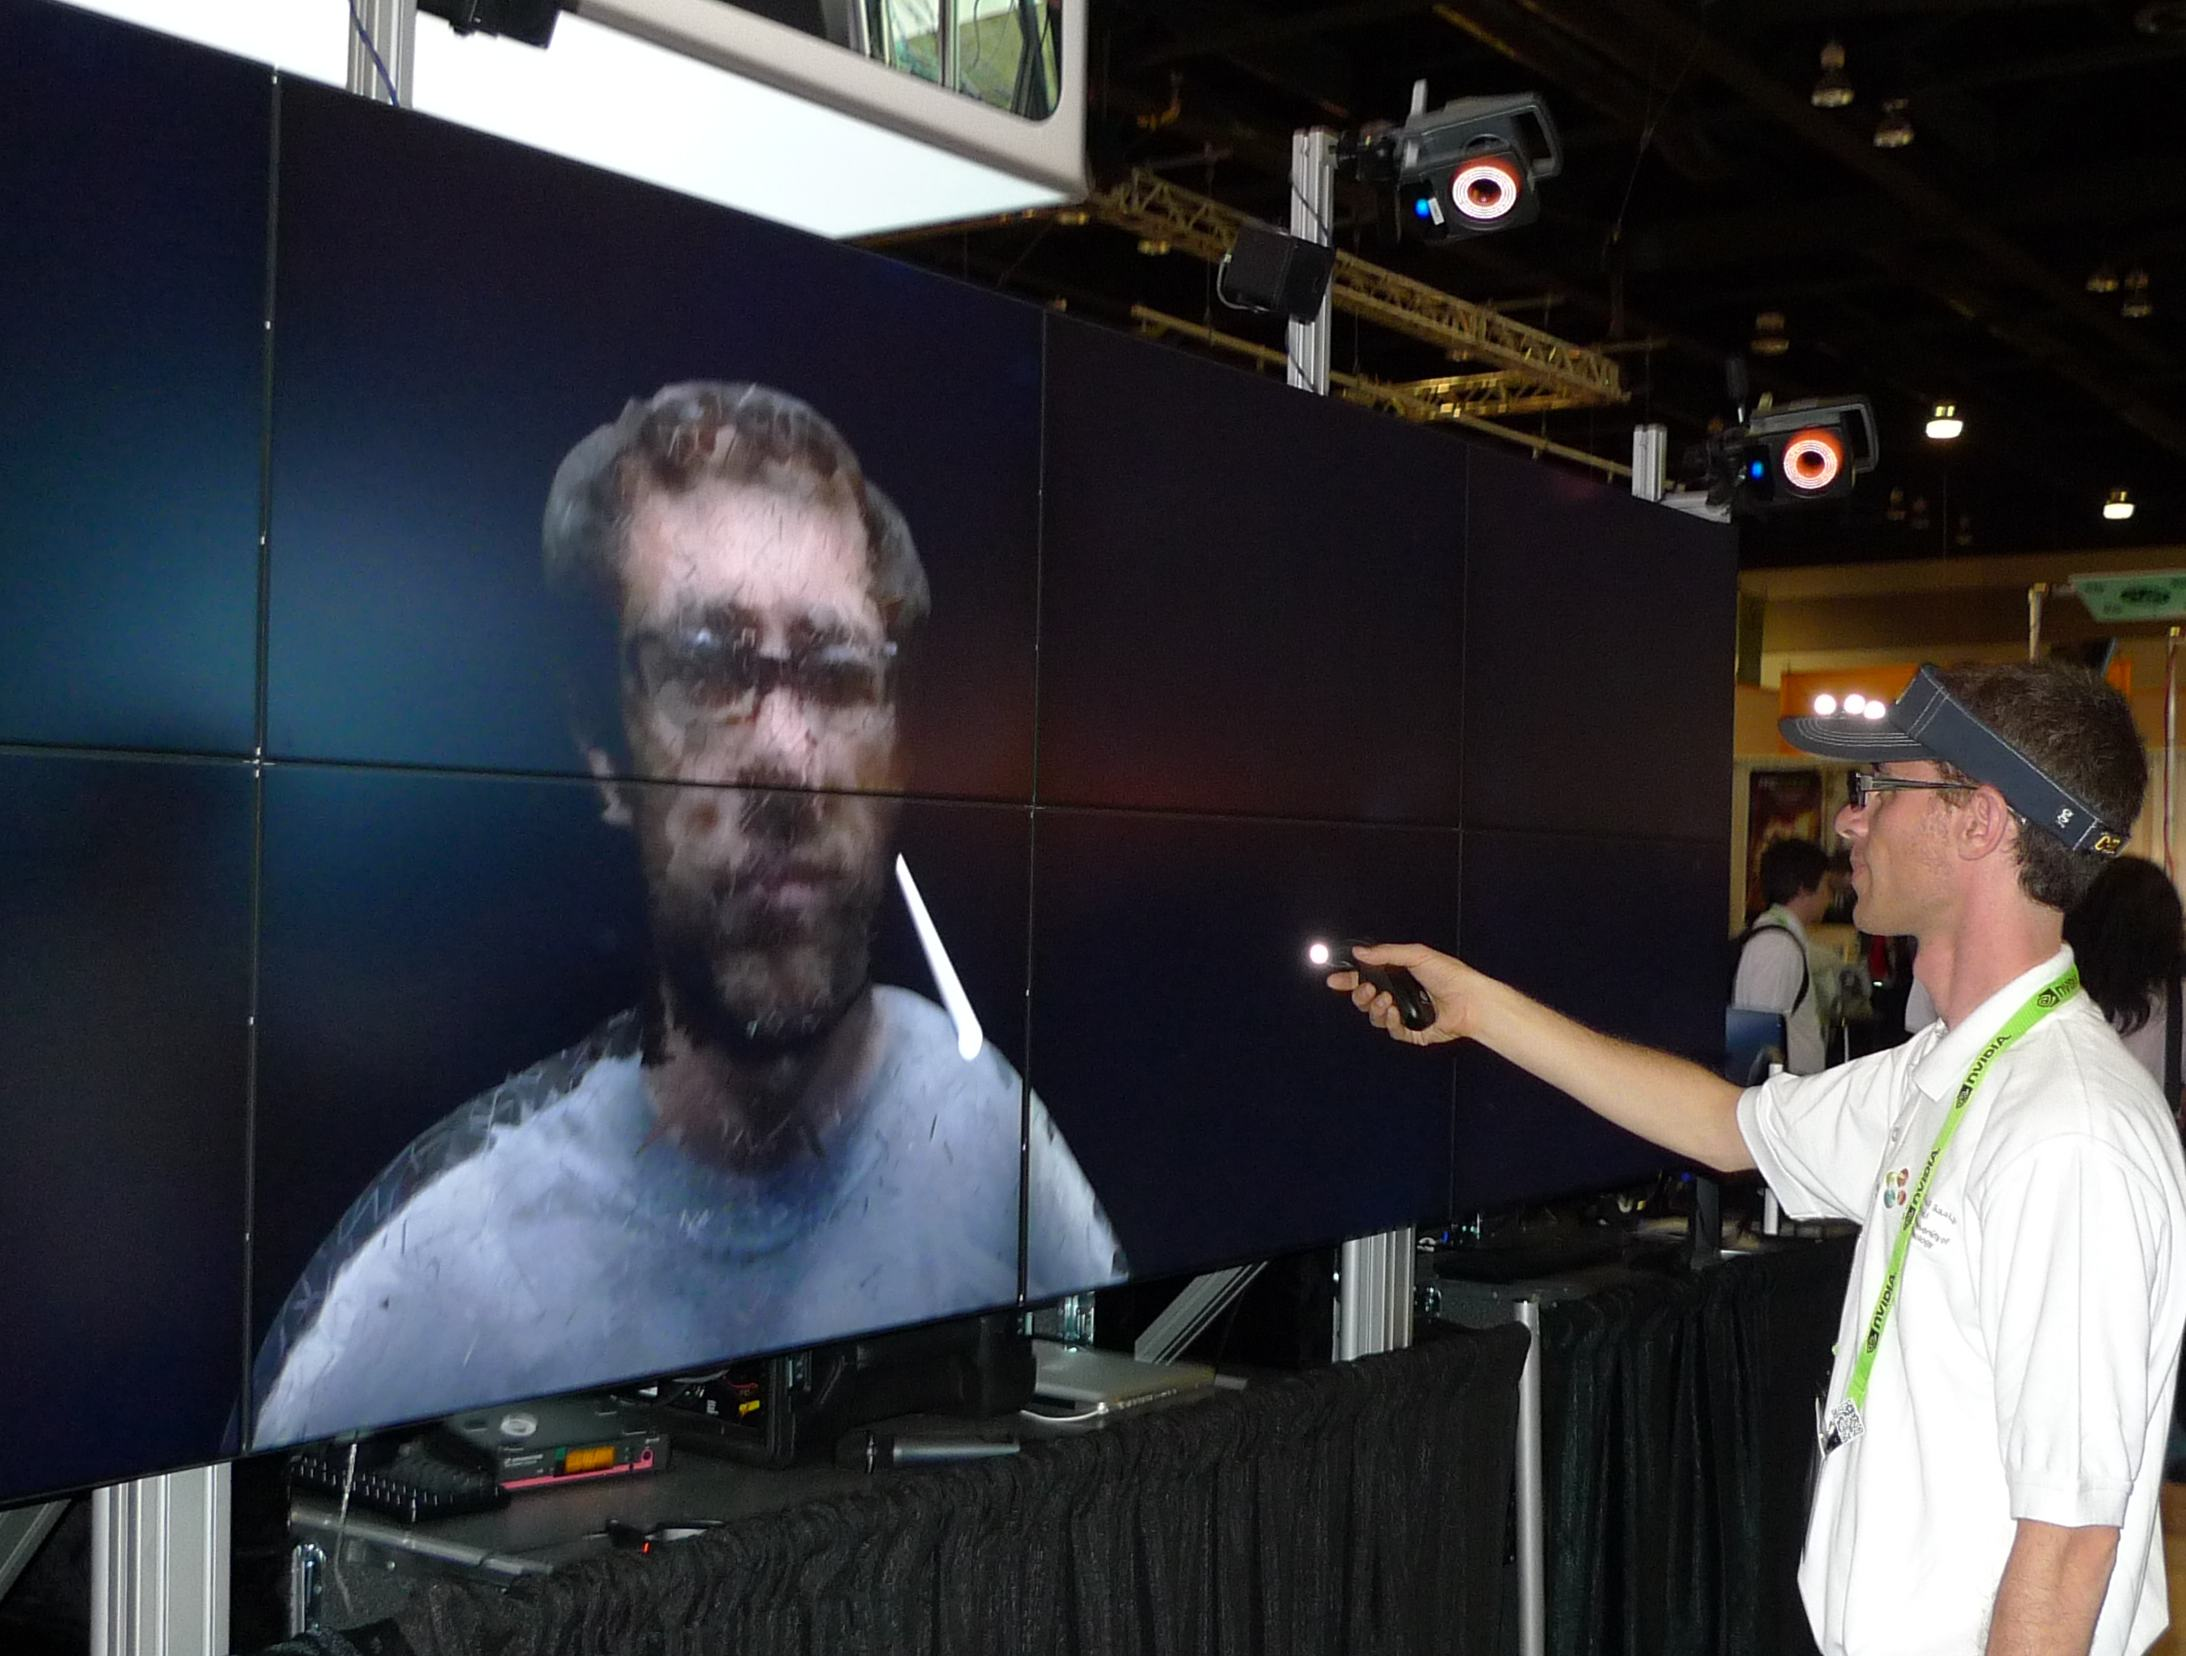 Todd Margolis interacts with CalVR software on the Vroom